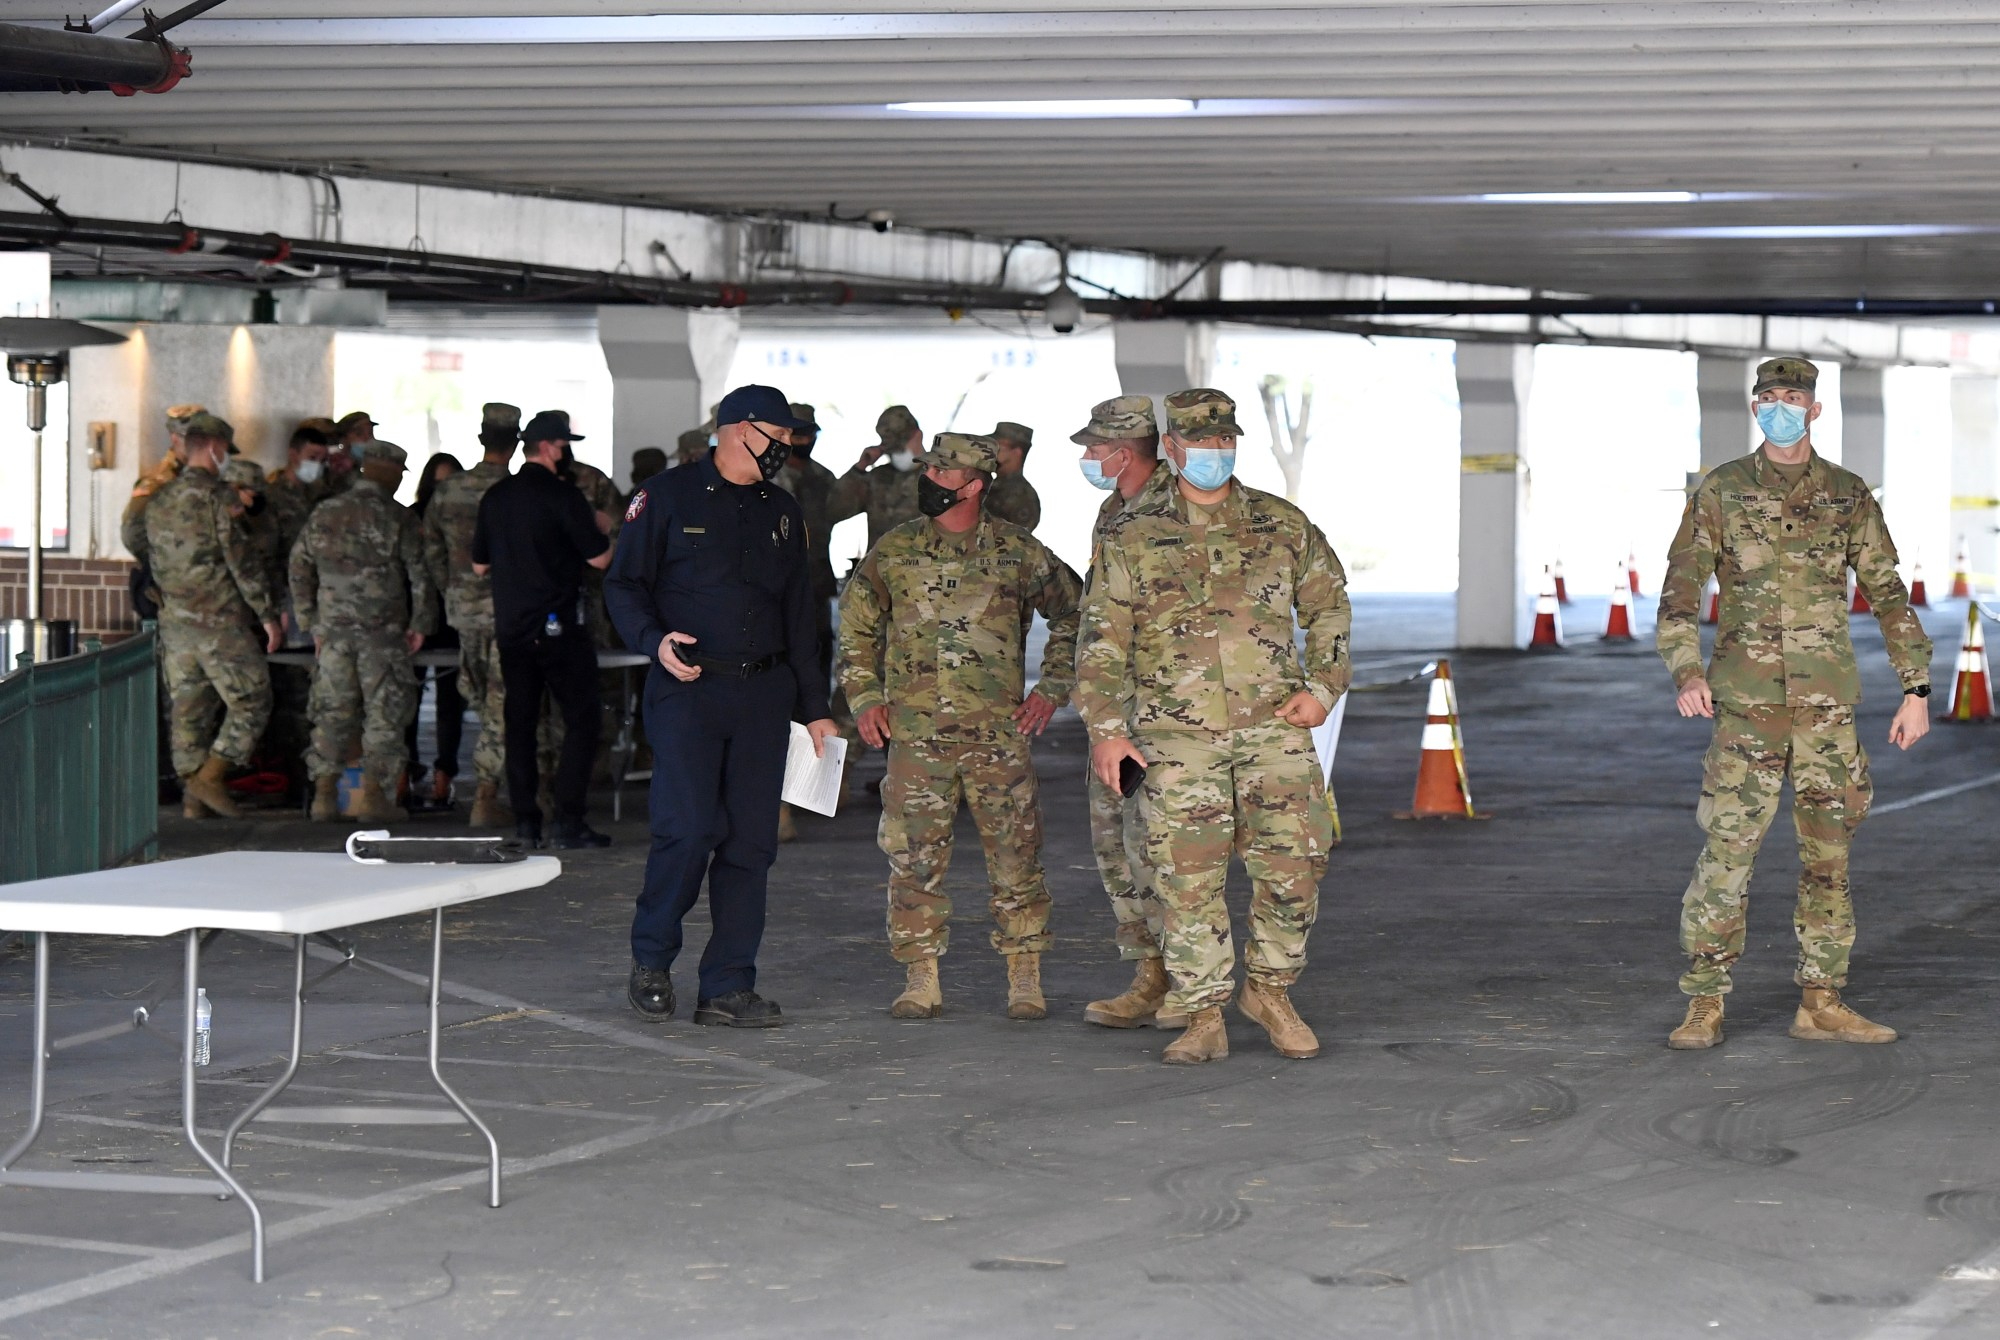 Members of the Nevada National Guard and the Clark County Fire Department set up a COVID-19 testing site in the parking garage of the Texas Station Gambling Hall & Hotel on Nov. 12, 2020, in North Las Vegas, Nevada. (Ethan Miller/Getty Images)